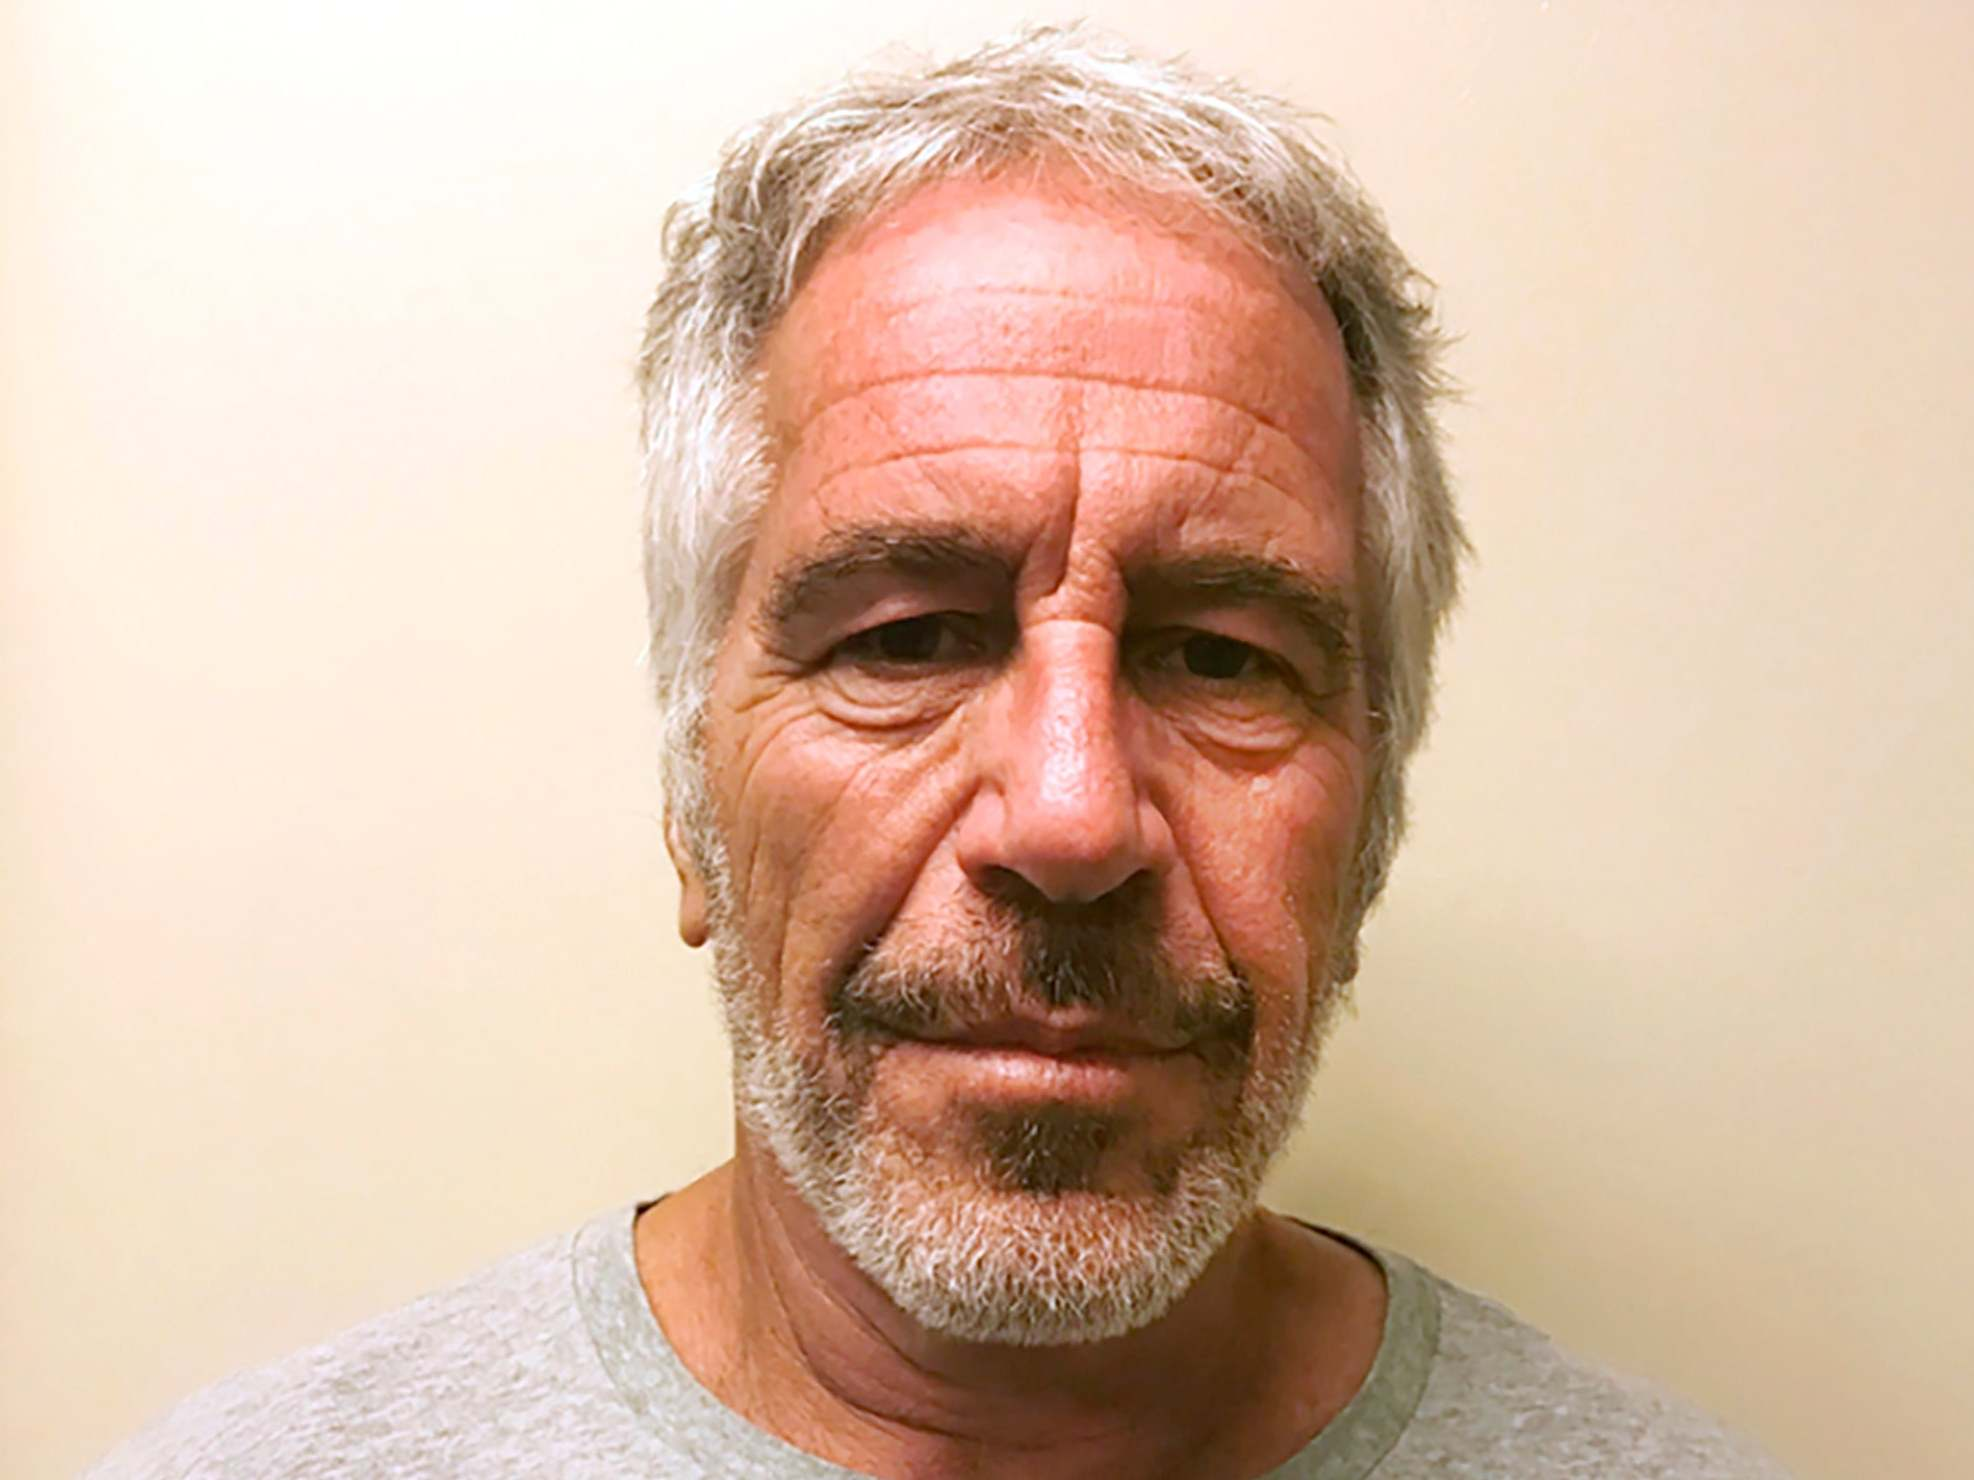 Jeffrey Epstein suicide attempt video accidentally deleted, prosecutors say